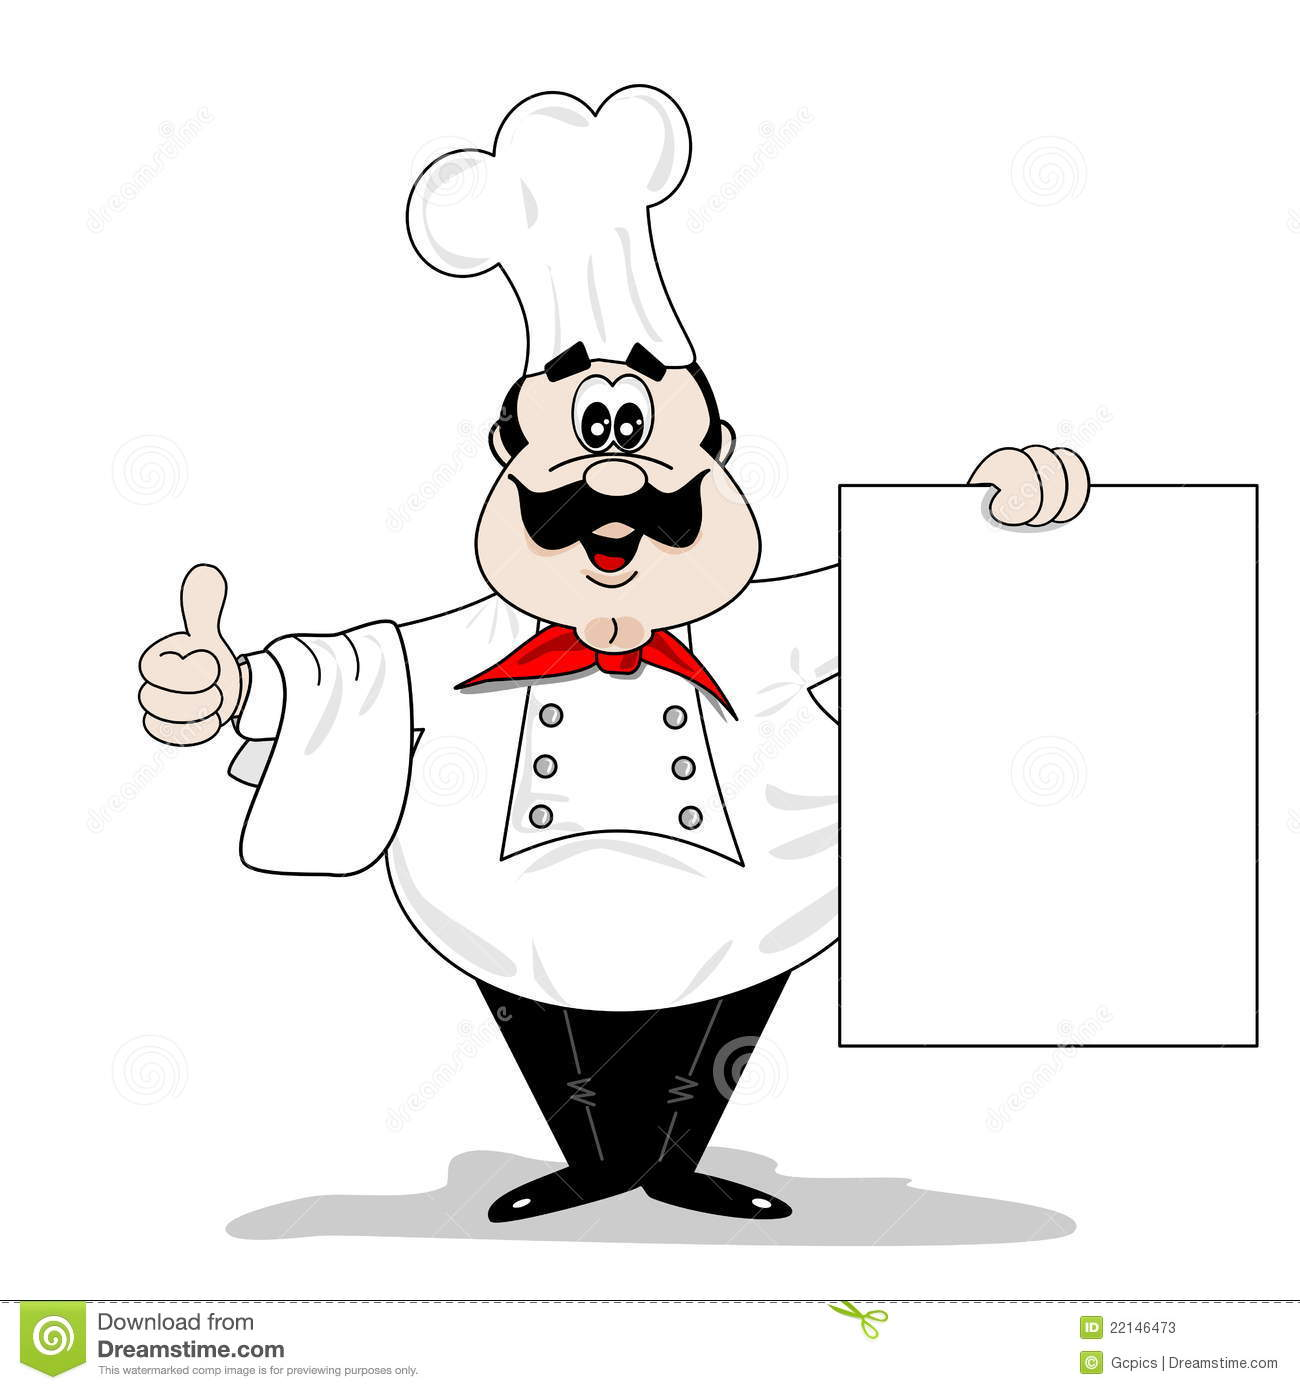 More similar stock images of ` Cartoon chef cook `